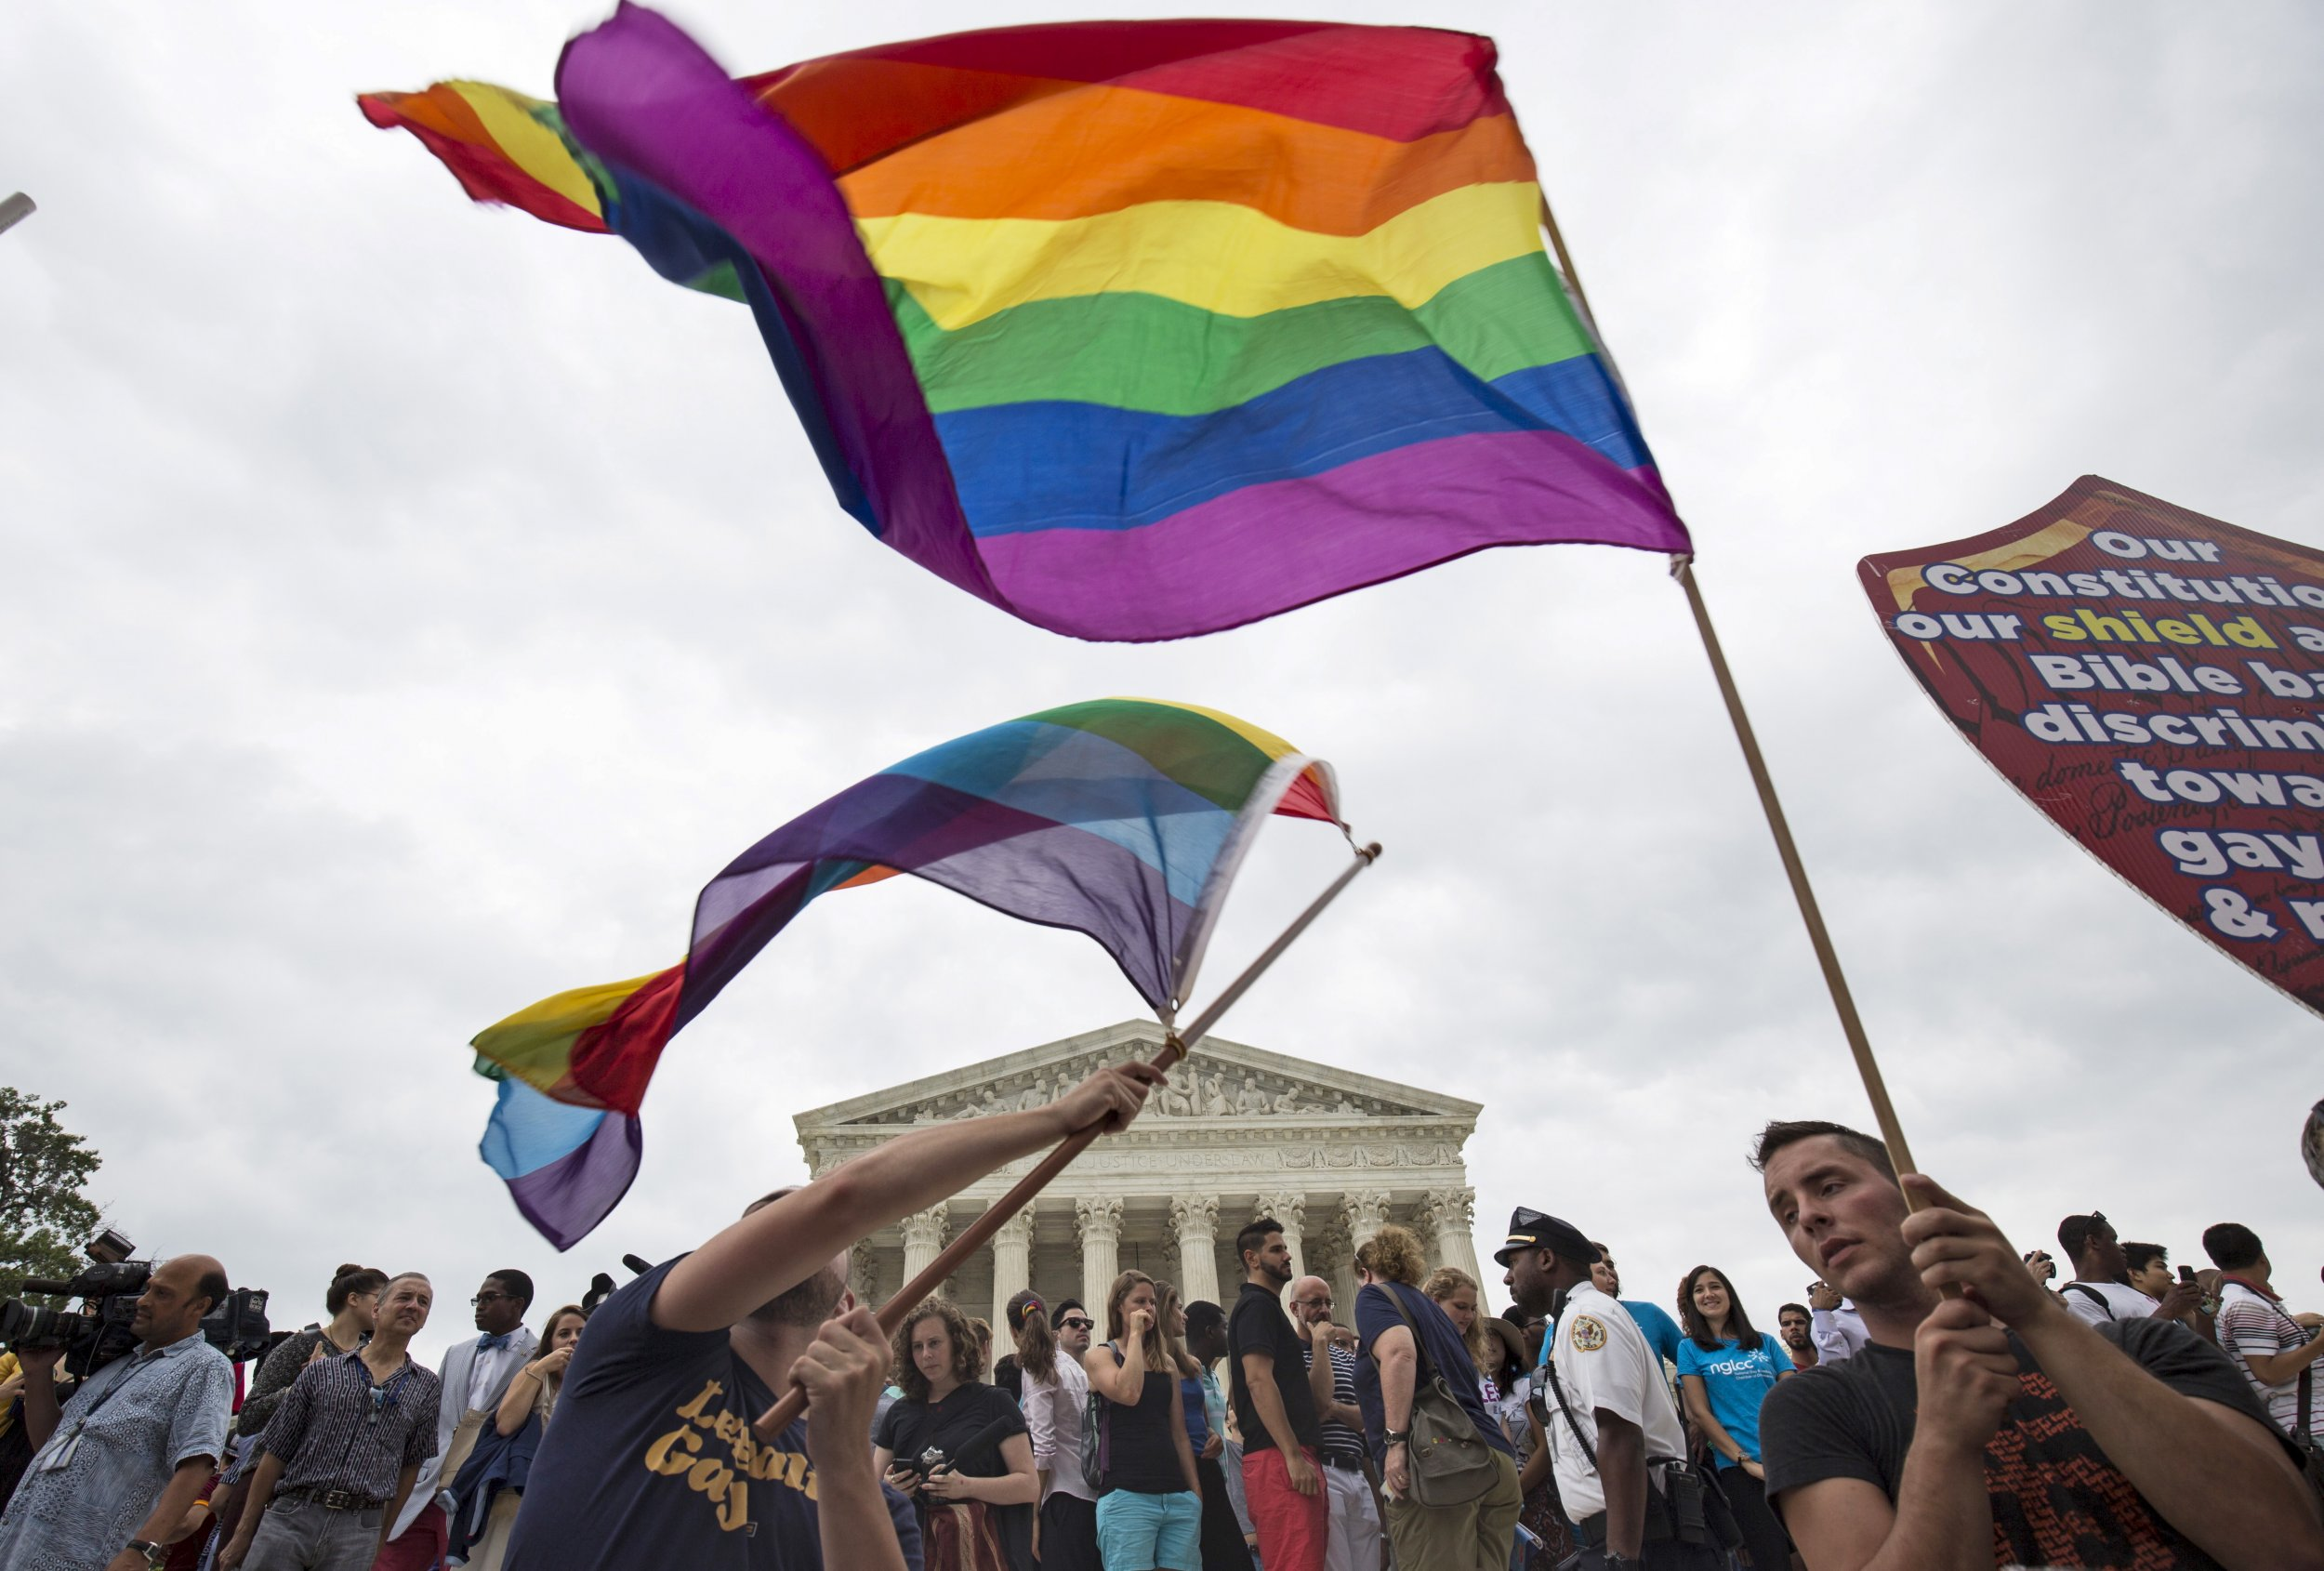 is gay marriage next? newsweek